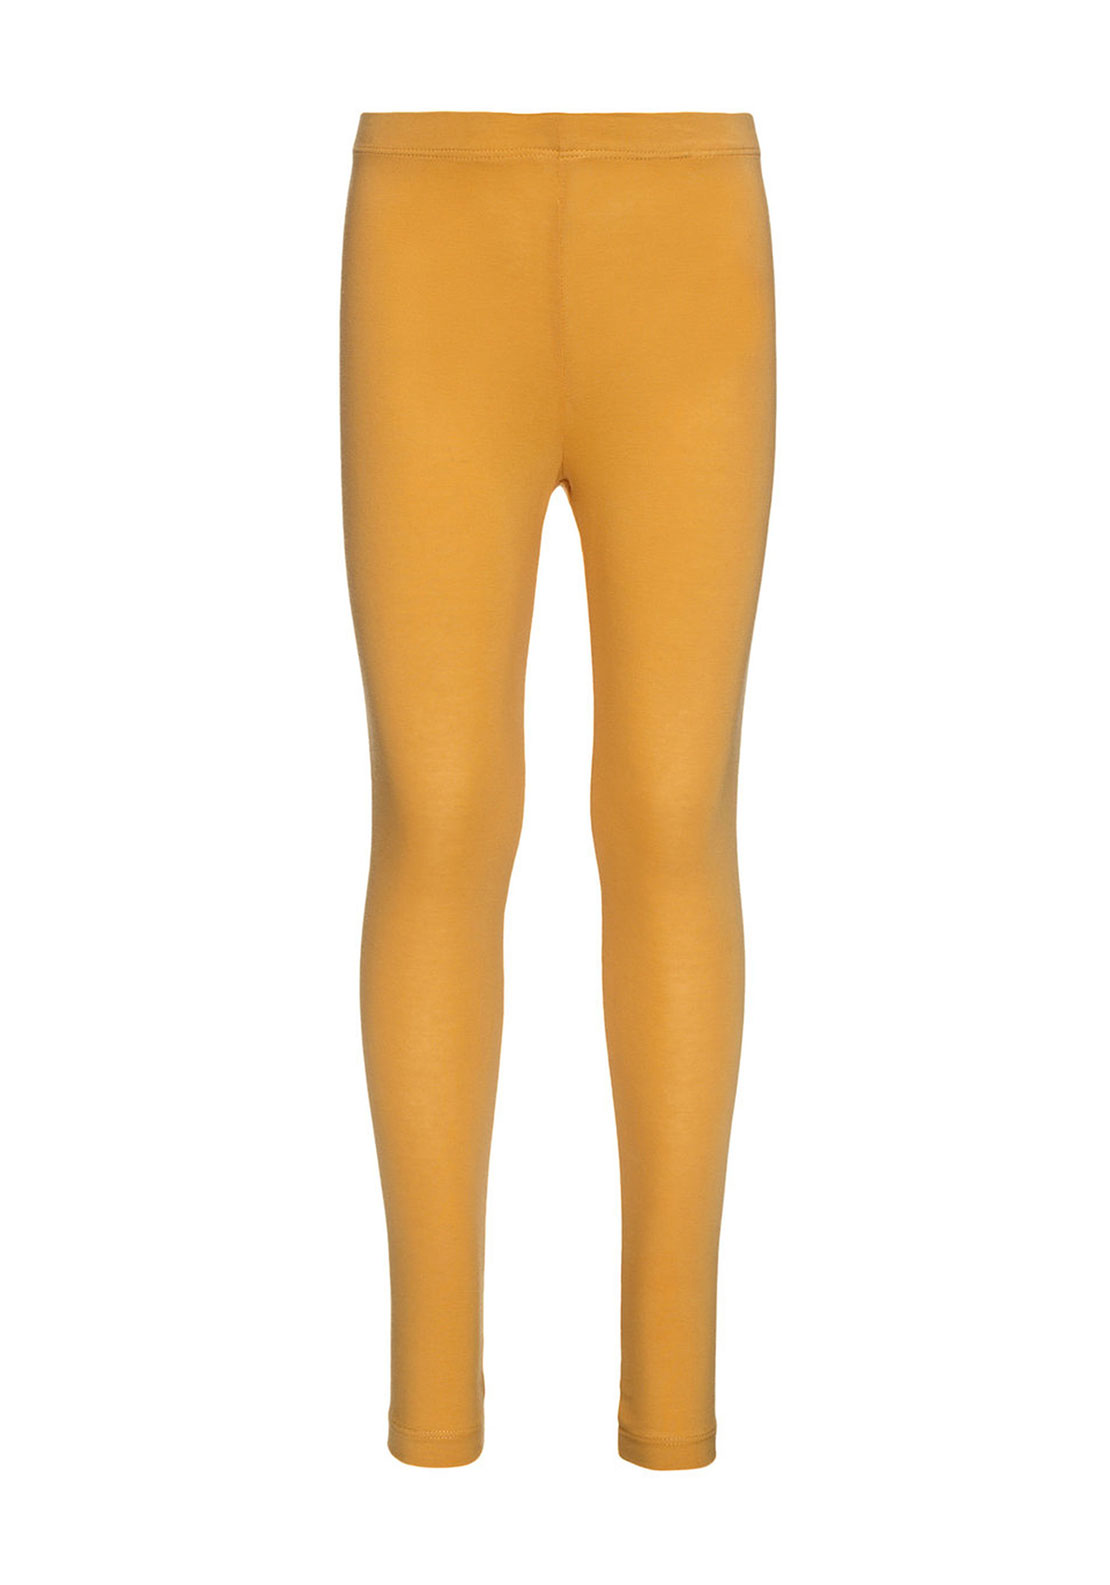 Name It Girls Vivian Leggings, Mustard Yellow